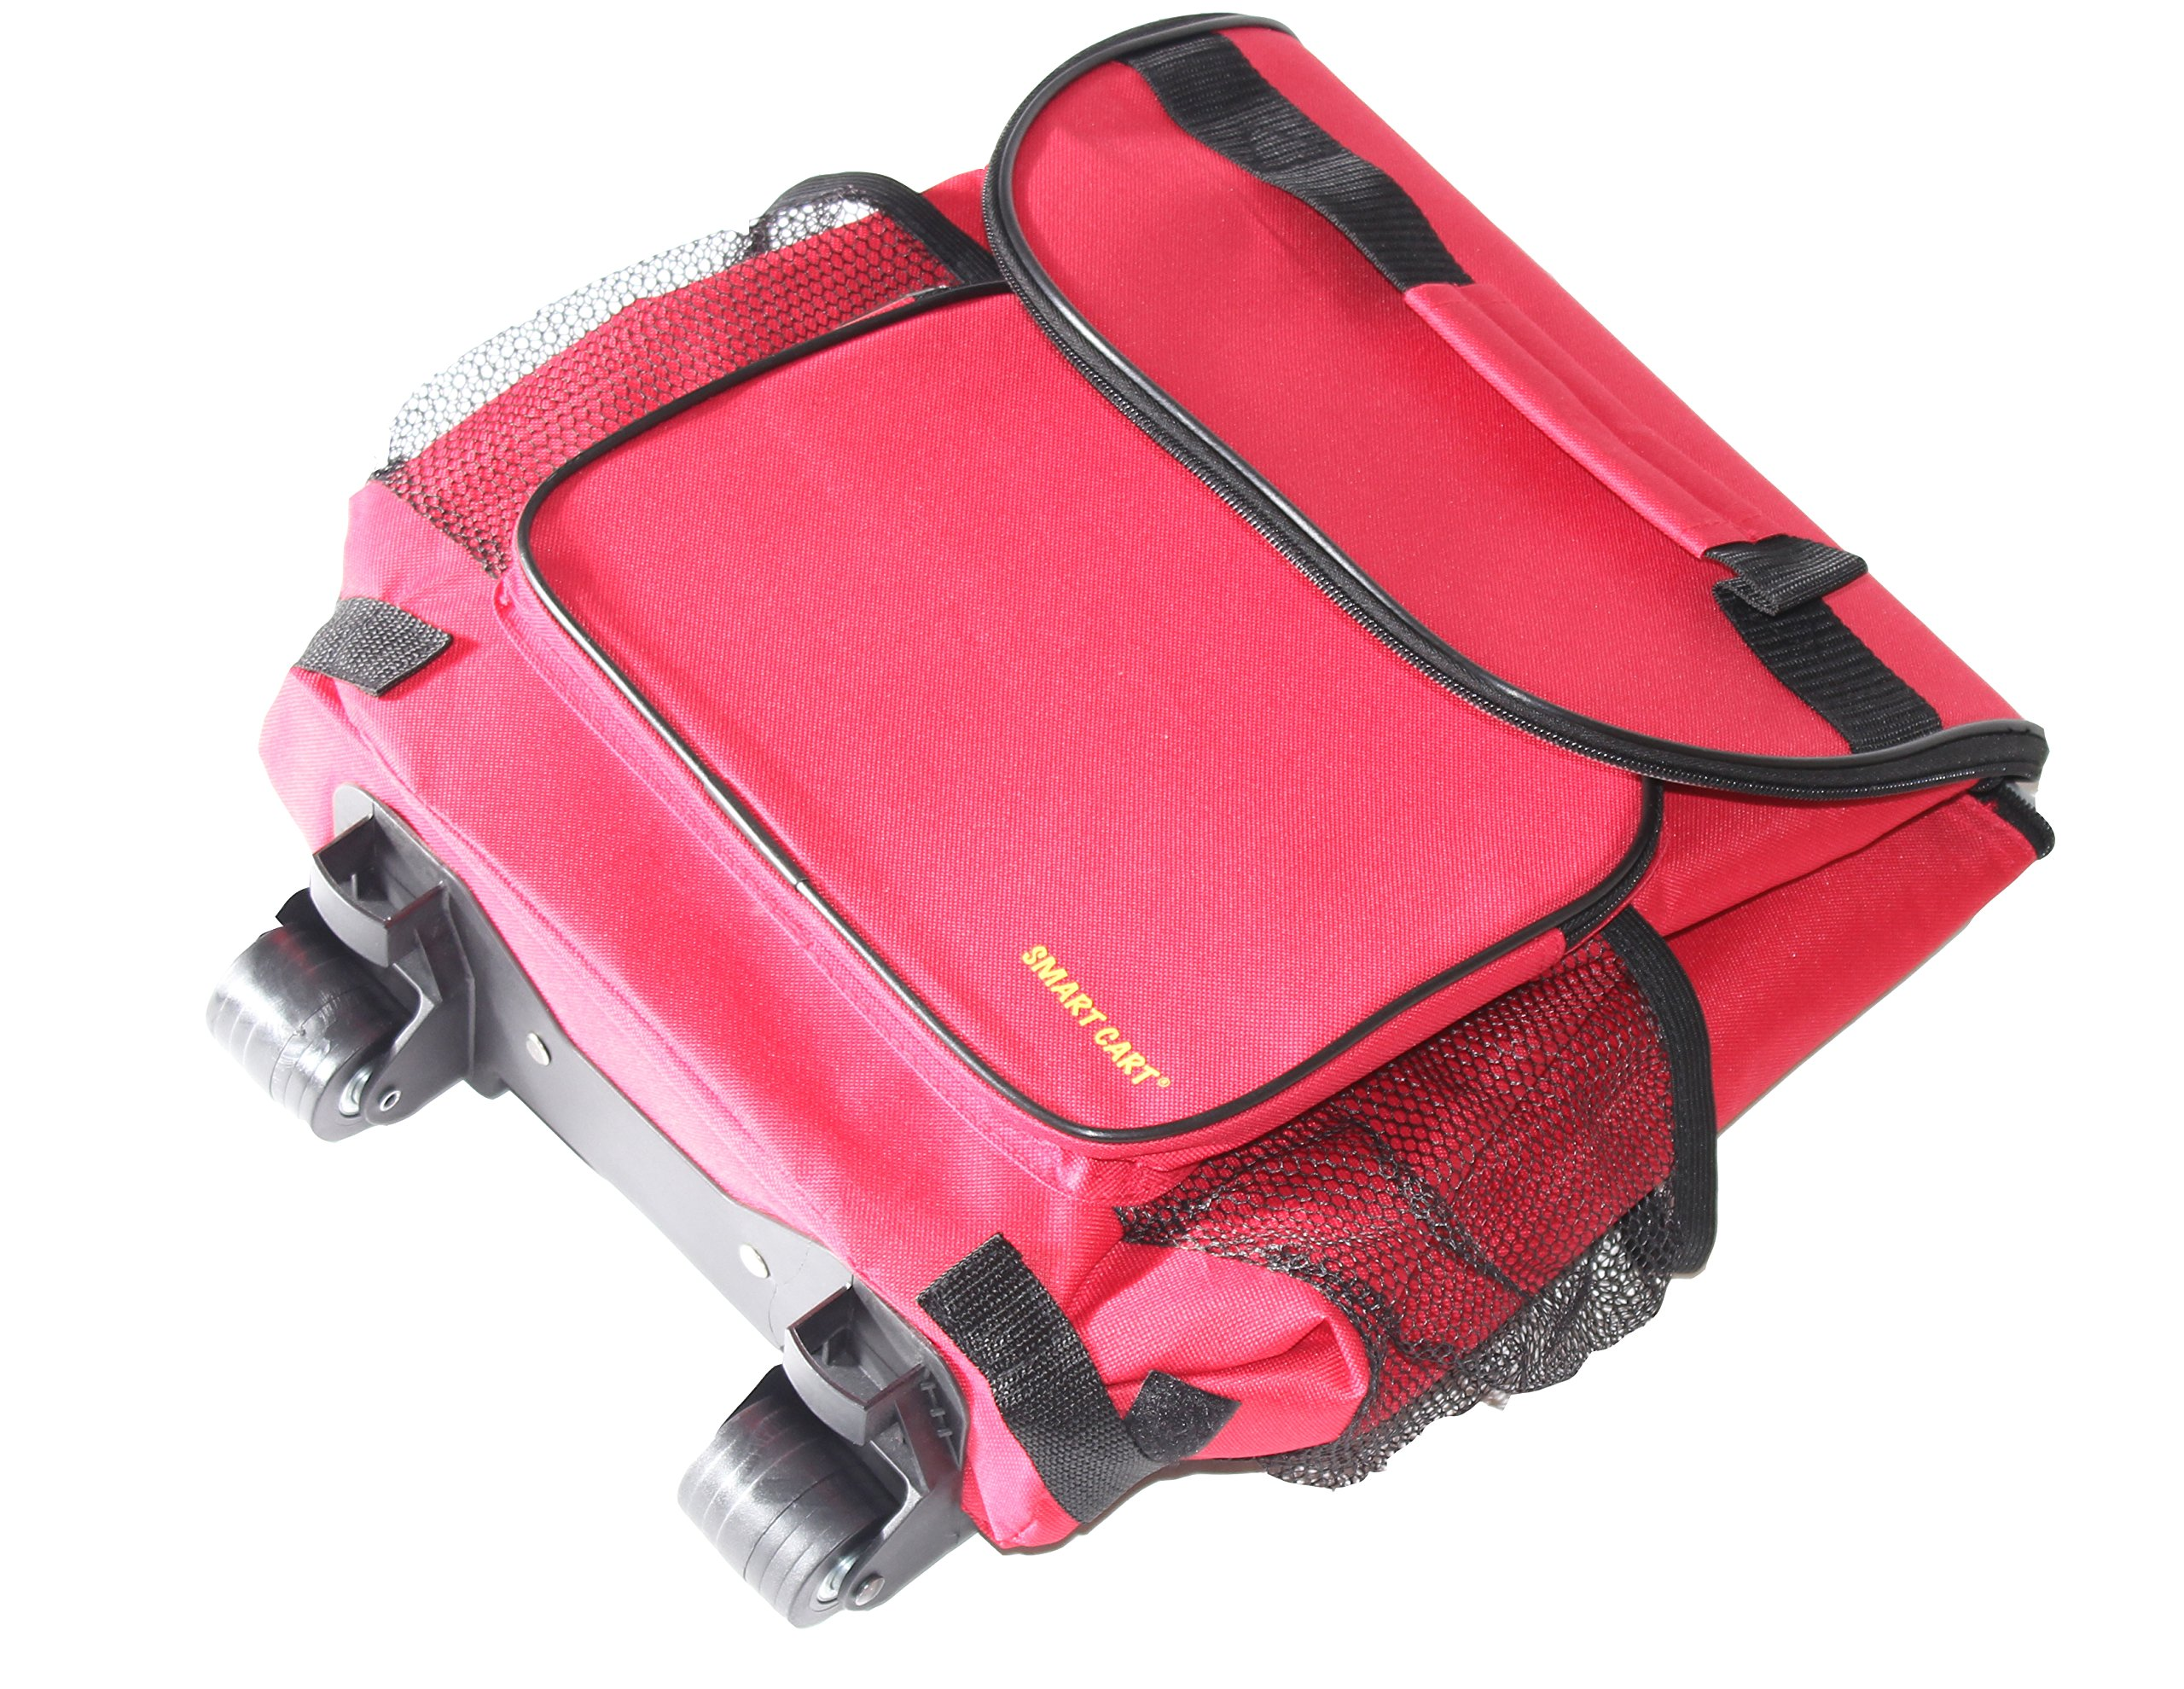 dbest products Ultra Compact Smart Cart,Red Insulated Cooler by dbest products (Image #5)